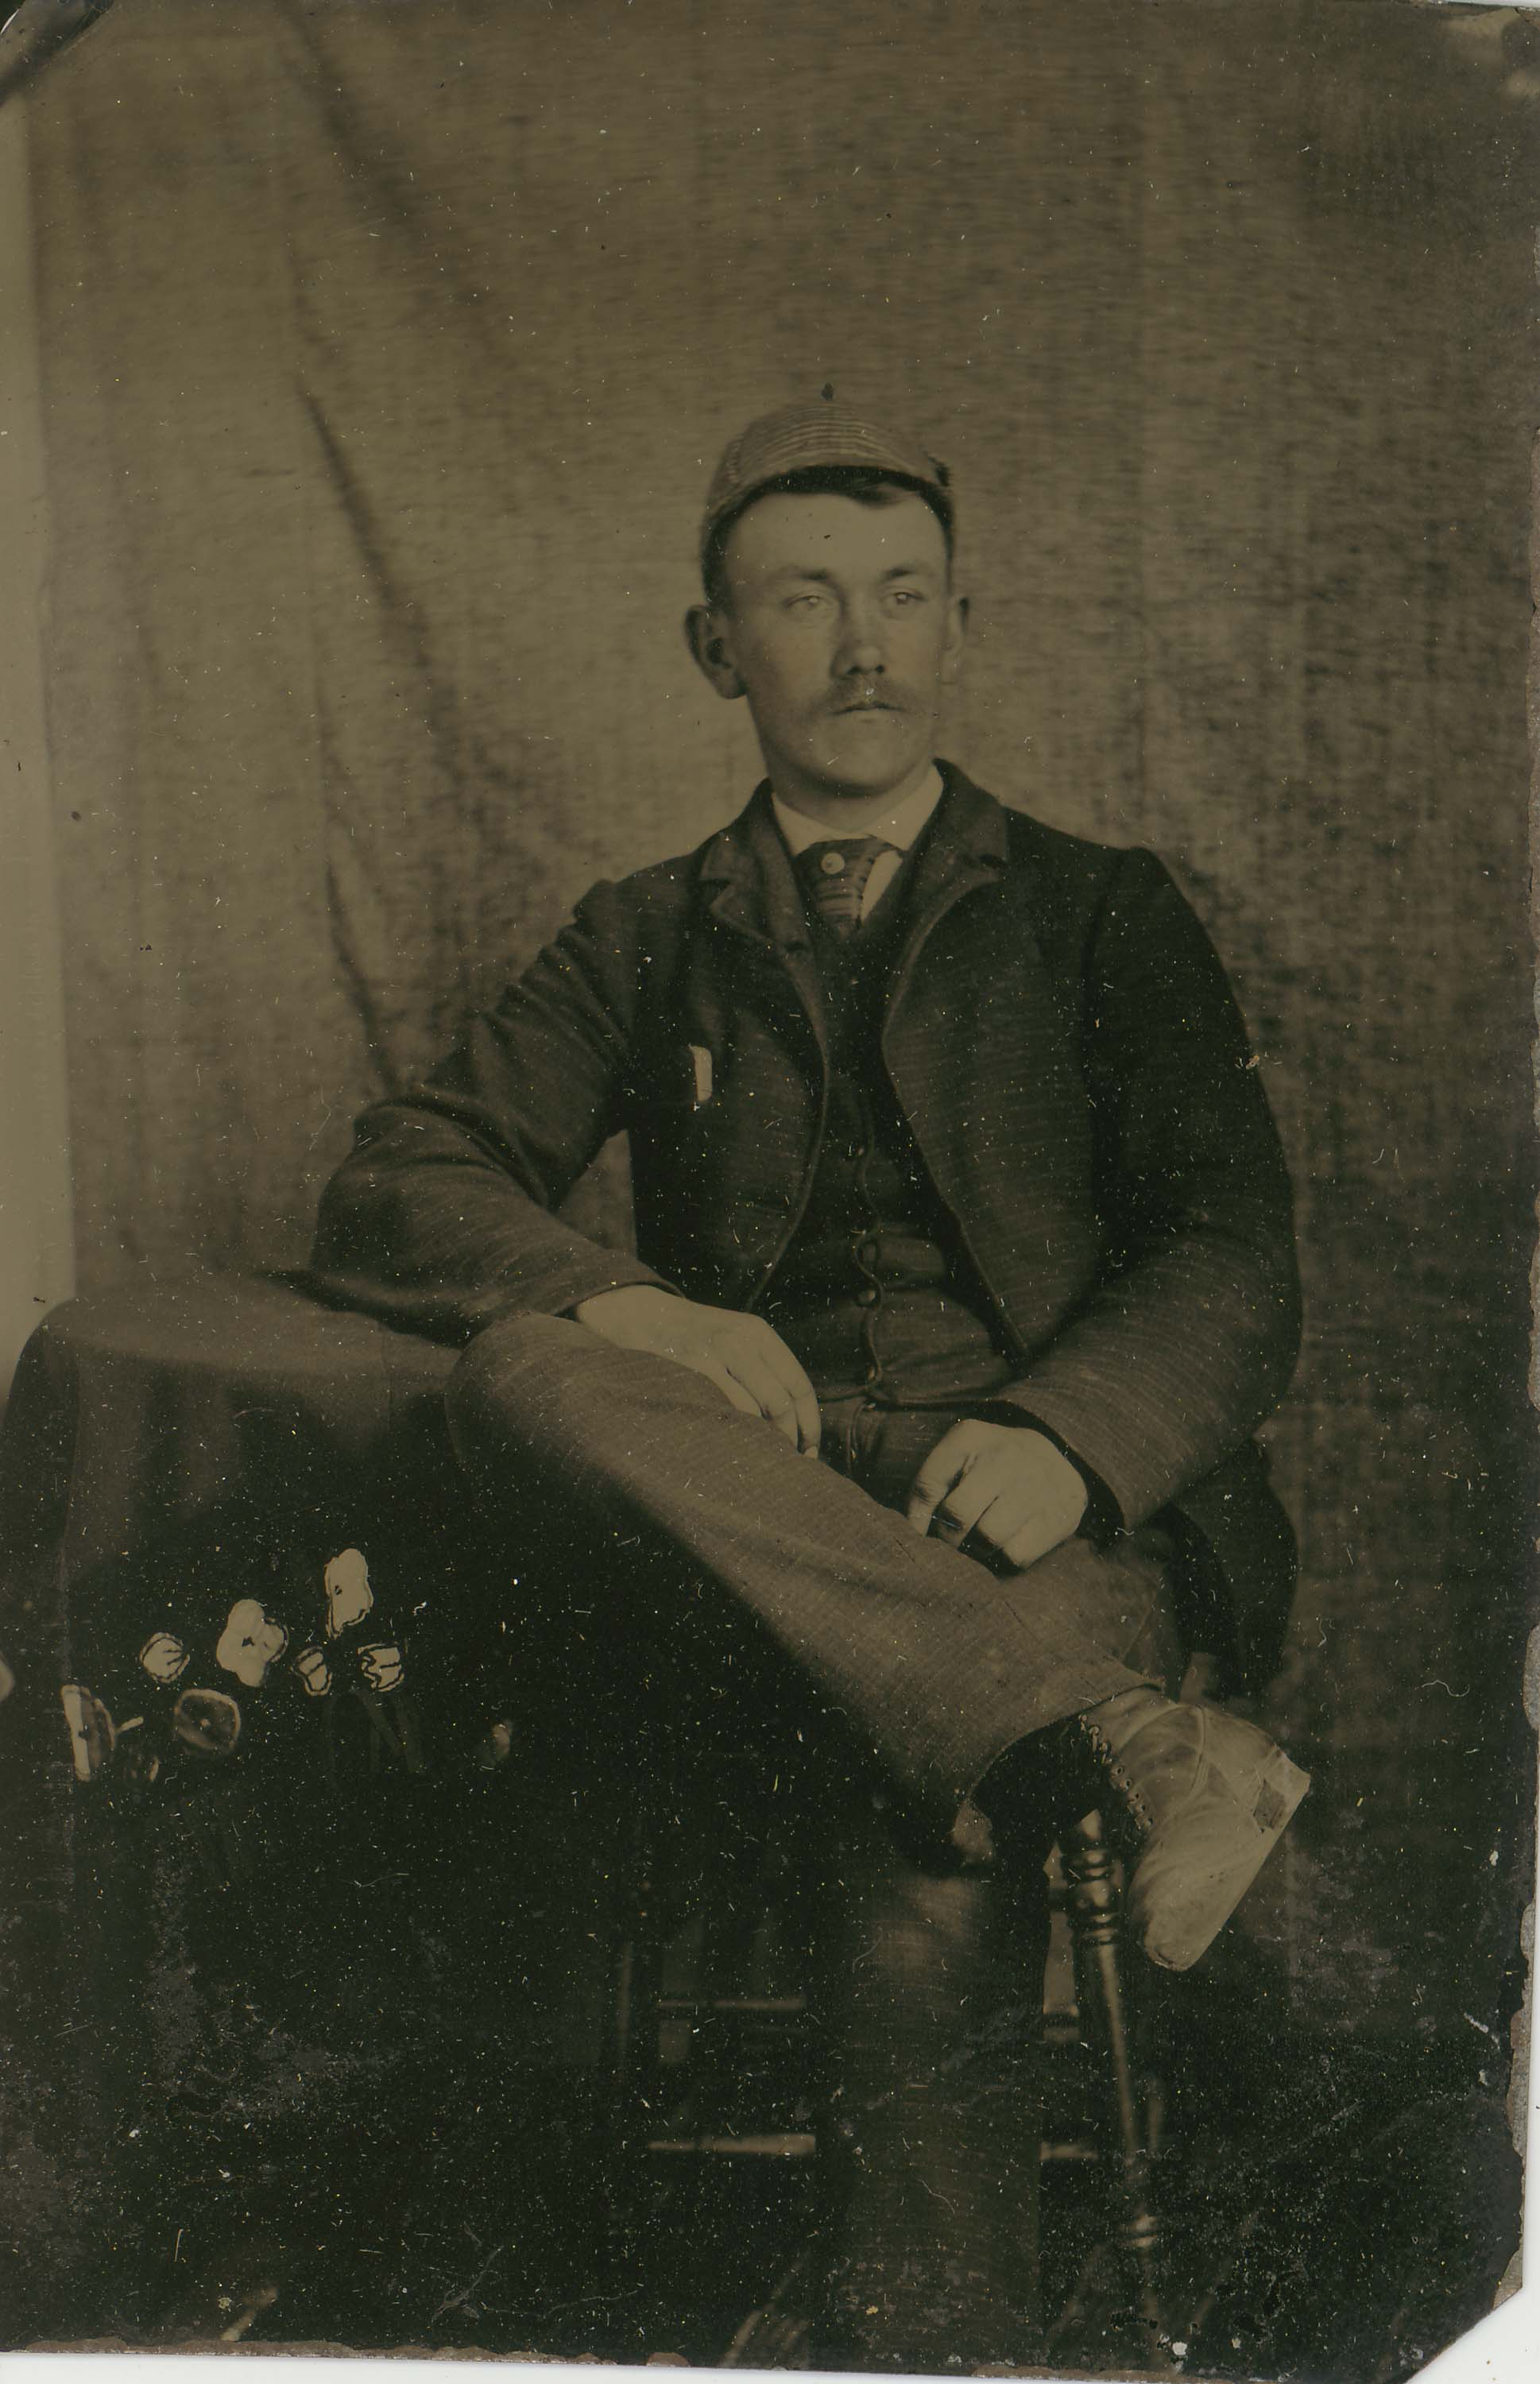 Tin-type-1-Man-seated-at-table-with-cap